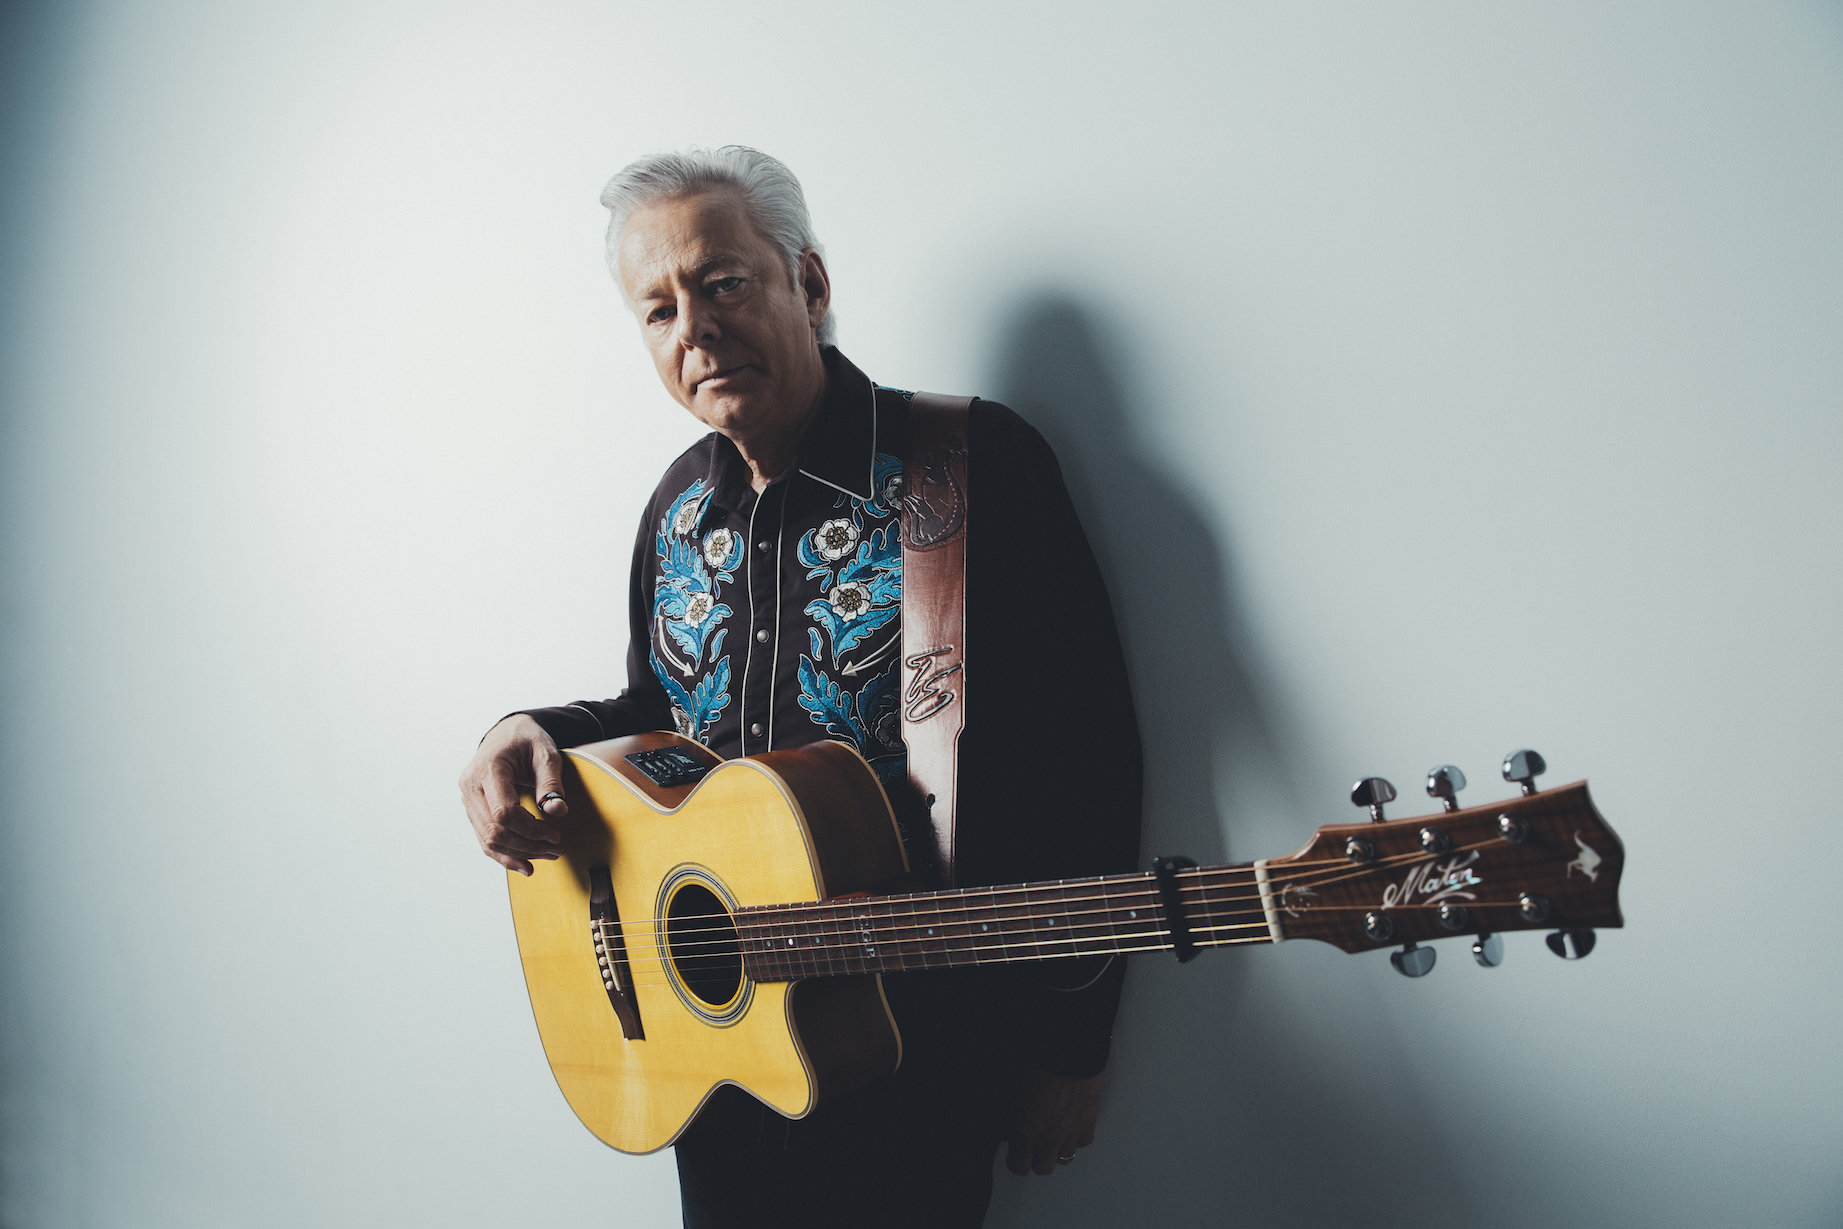 TOMMY EMMANUEL COVERS PURPLE HAZE IN NEW VIDEO